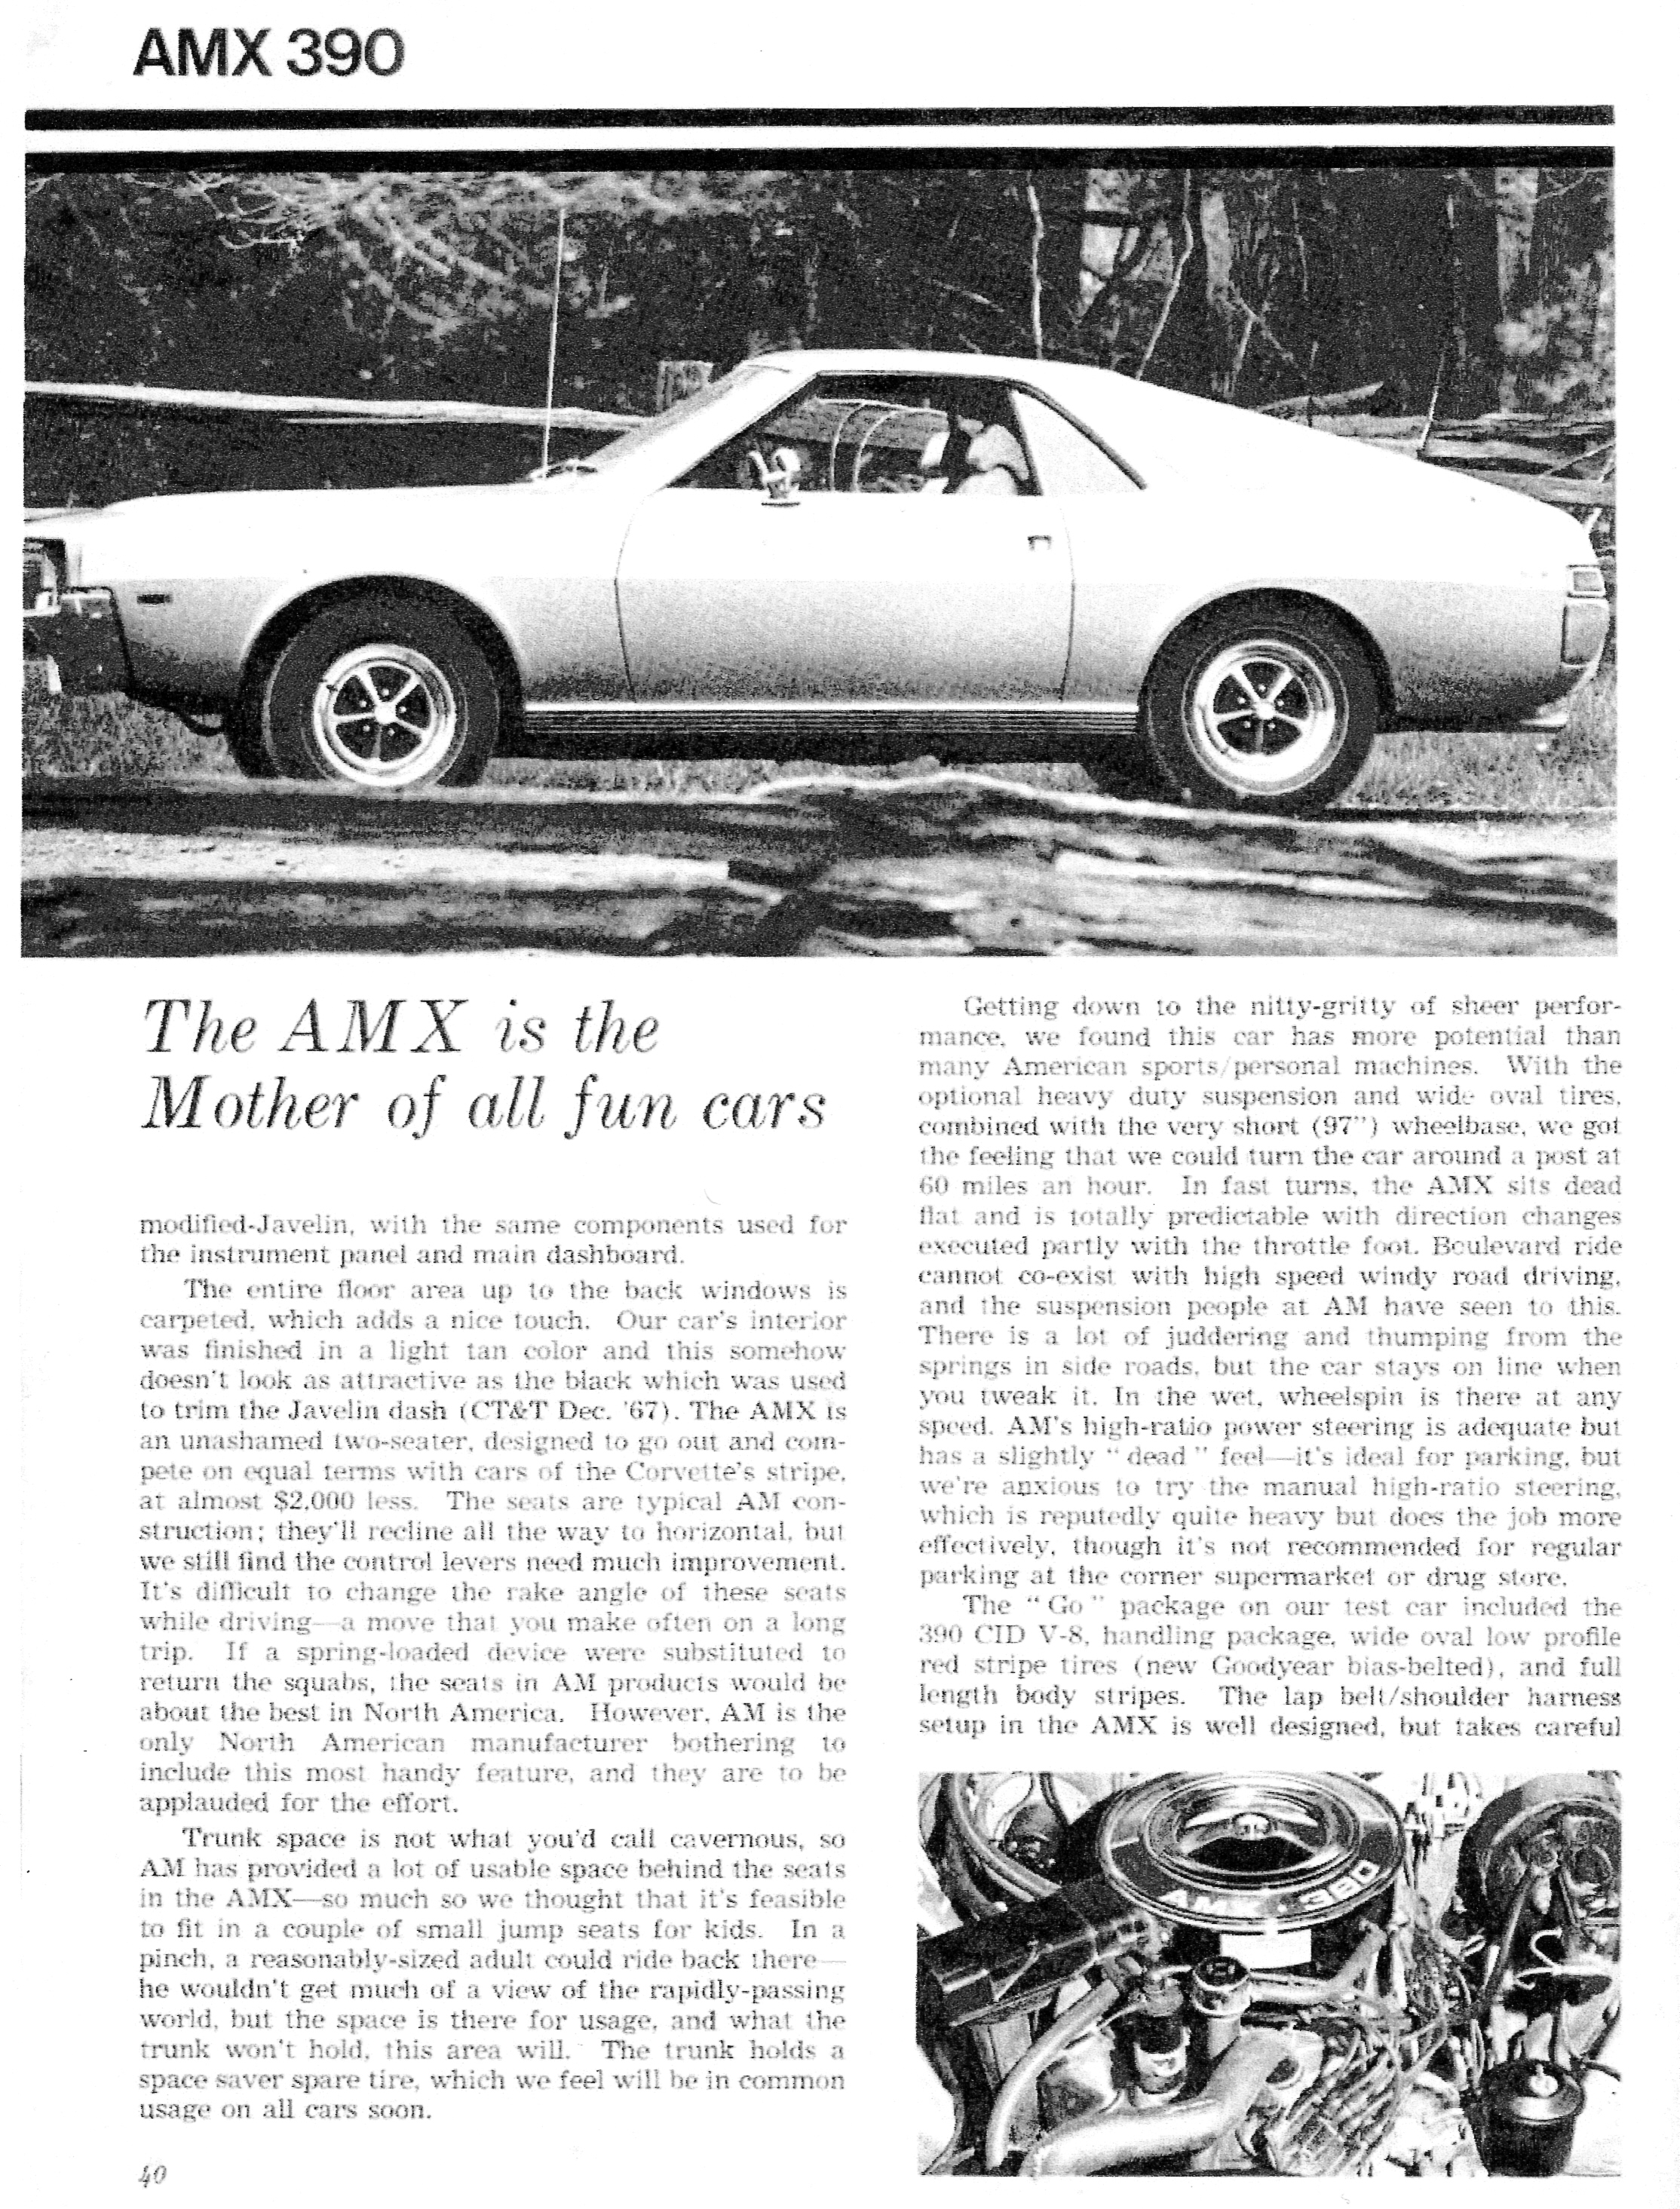 The American Motors AMX: The Two-Seat Muscle Car |